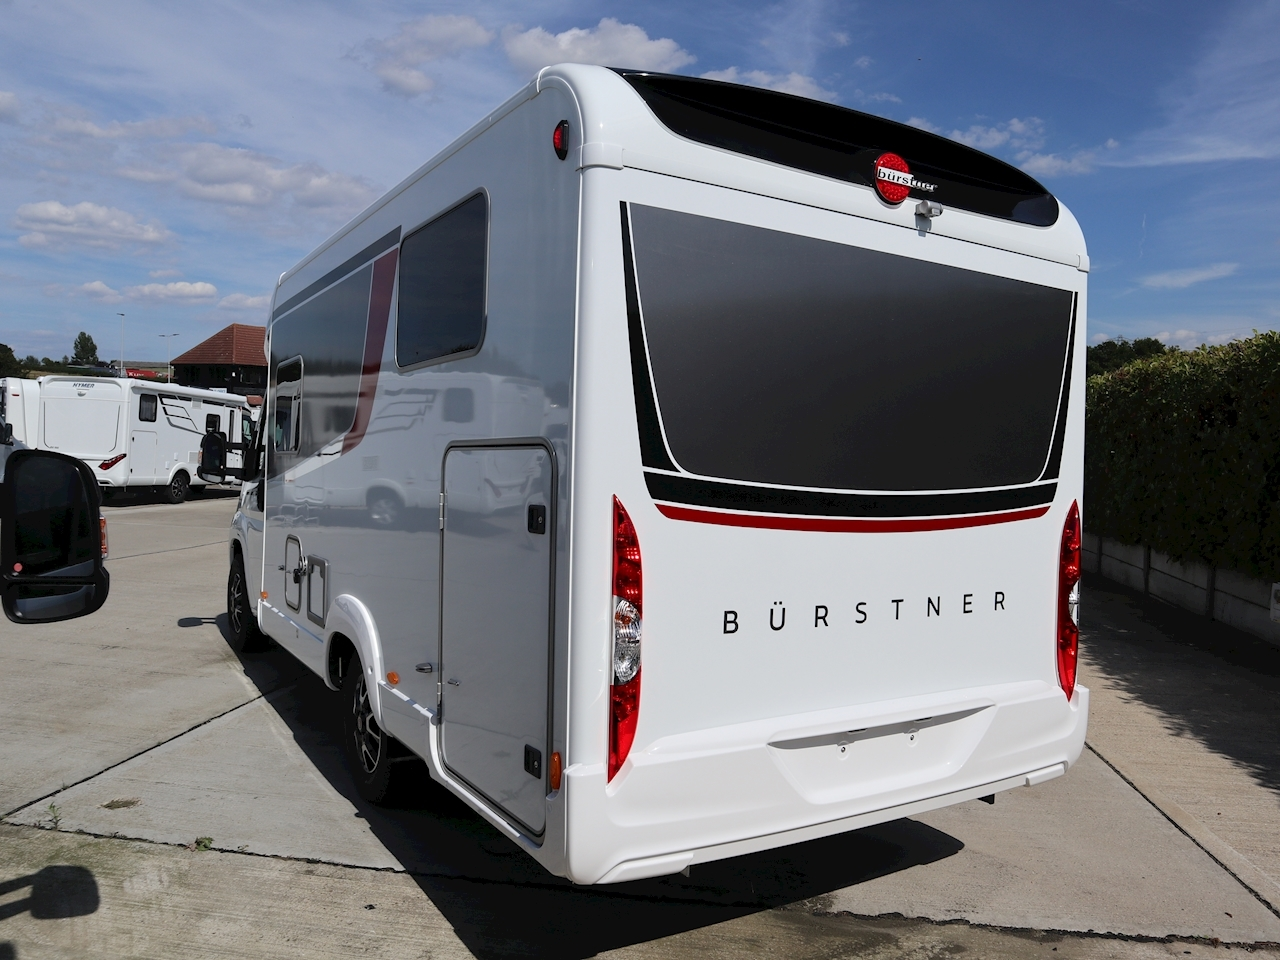 Burstner Travel Van T 620 G - Large 9